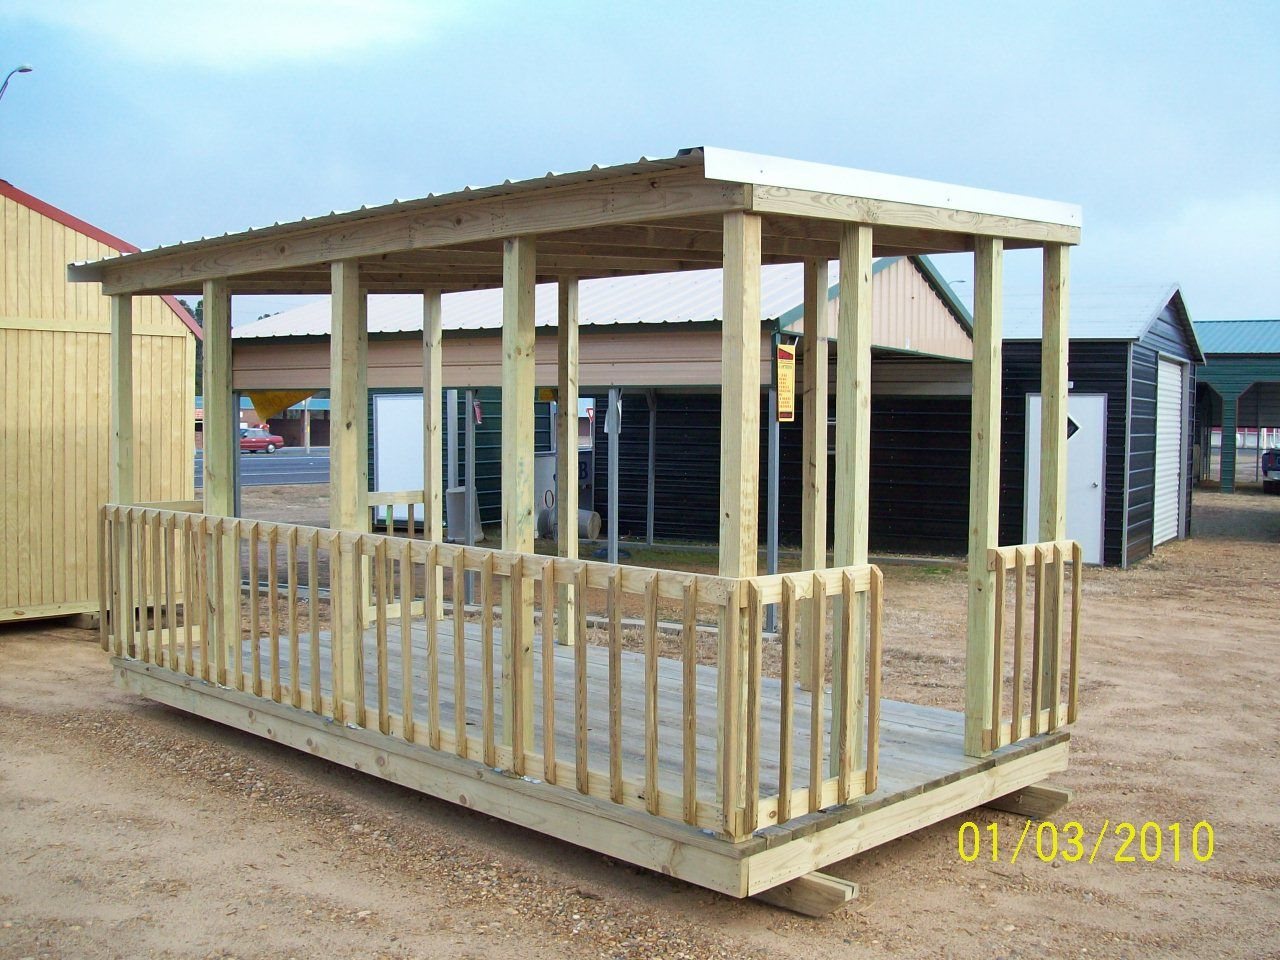 My Next Plan Was To Build A Deck For The Trailer, Freestanding Of Course,